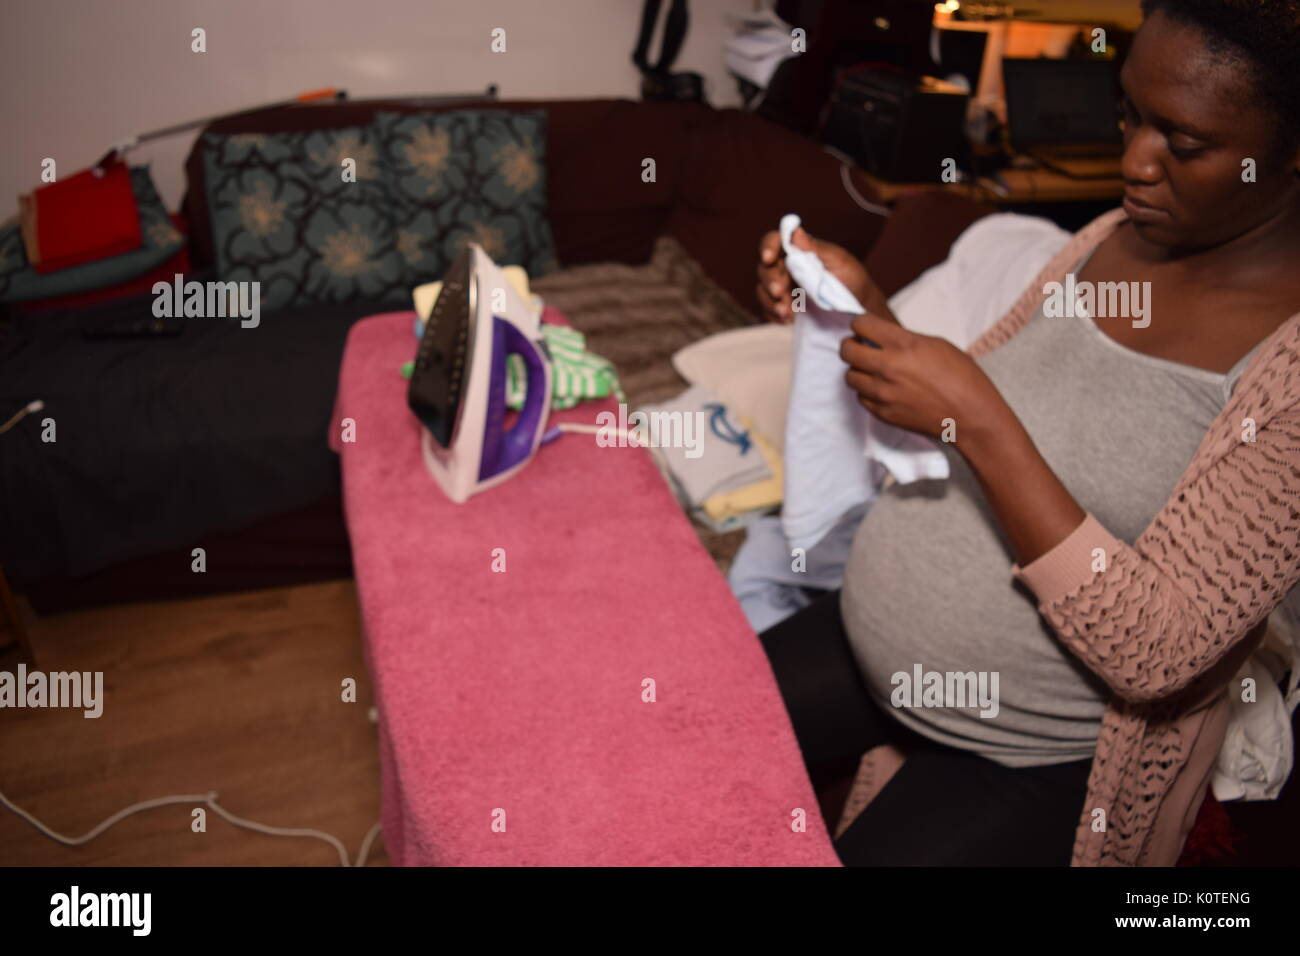 Pregnant woman ironing clothes - Stock Image